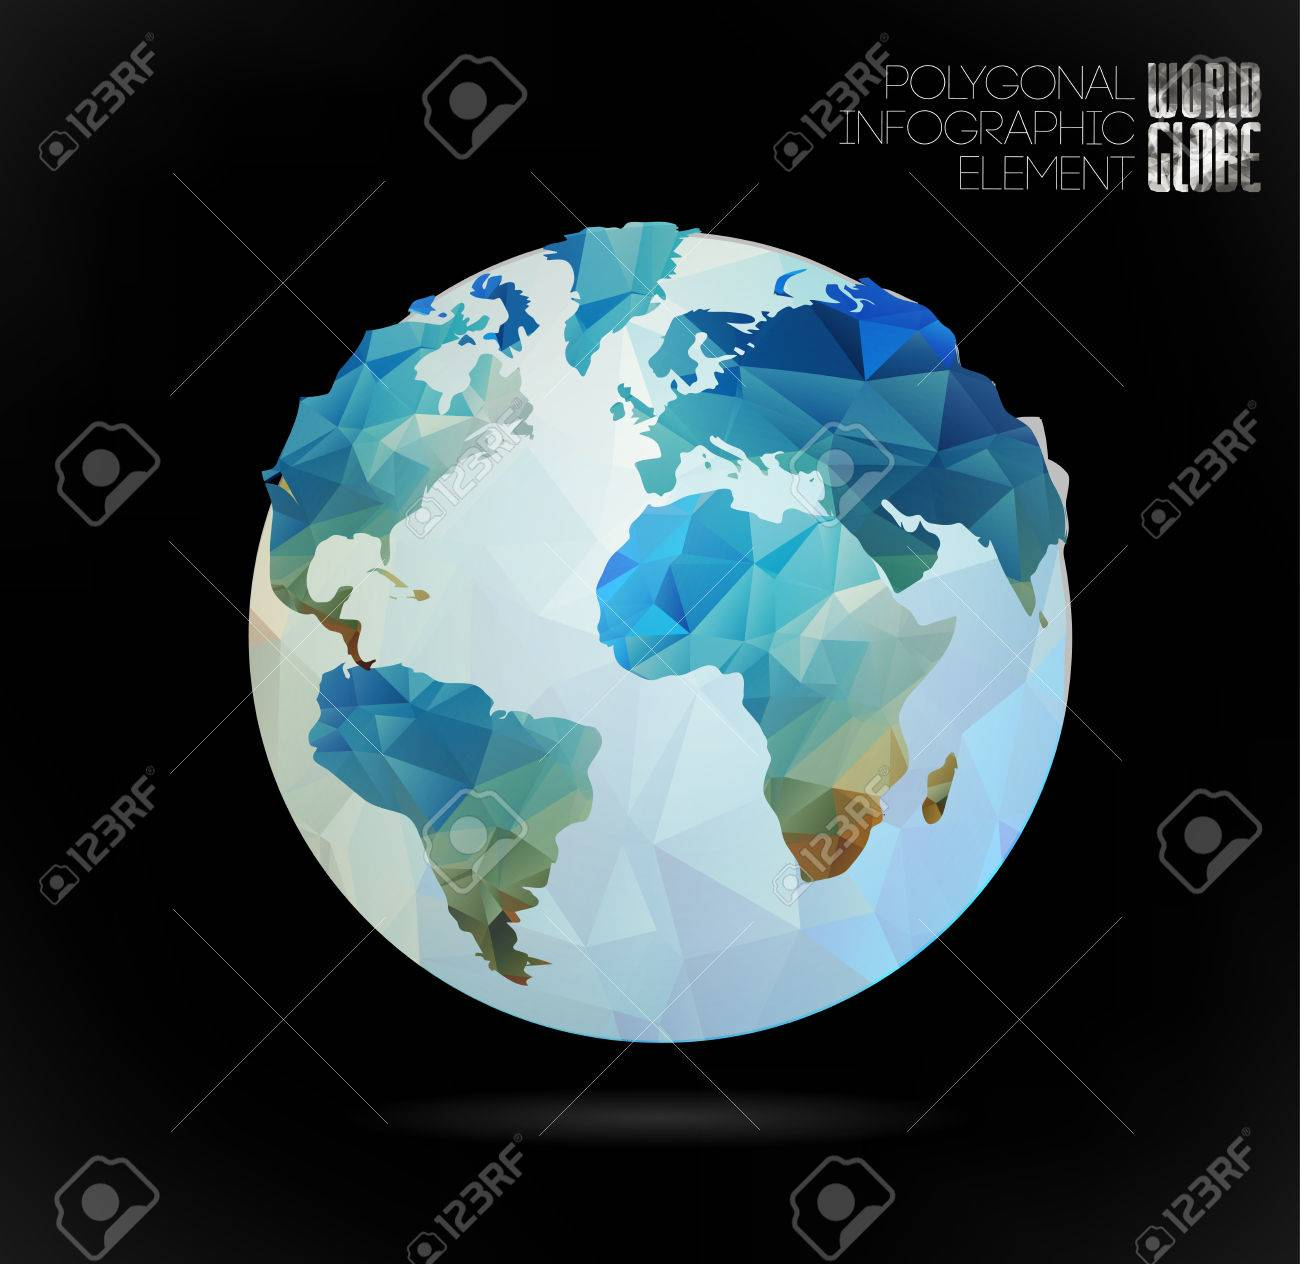 Vector world globe 3d triangular map of the earth modern elements vector vector world globe 3d triangular map of the earth modern elements of info graphics world map gumiabroncs Images